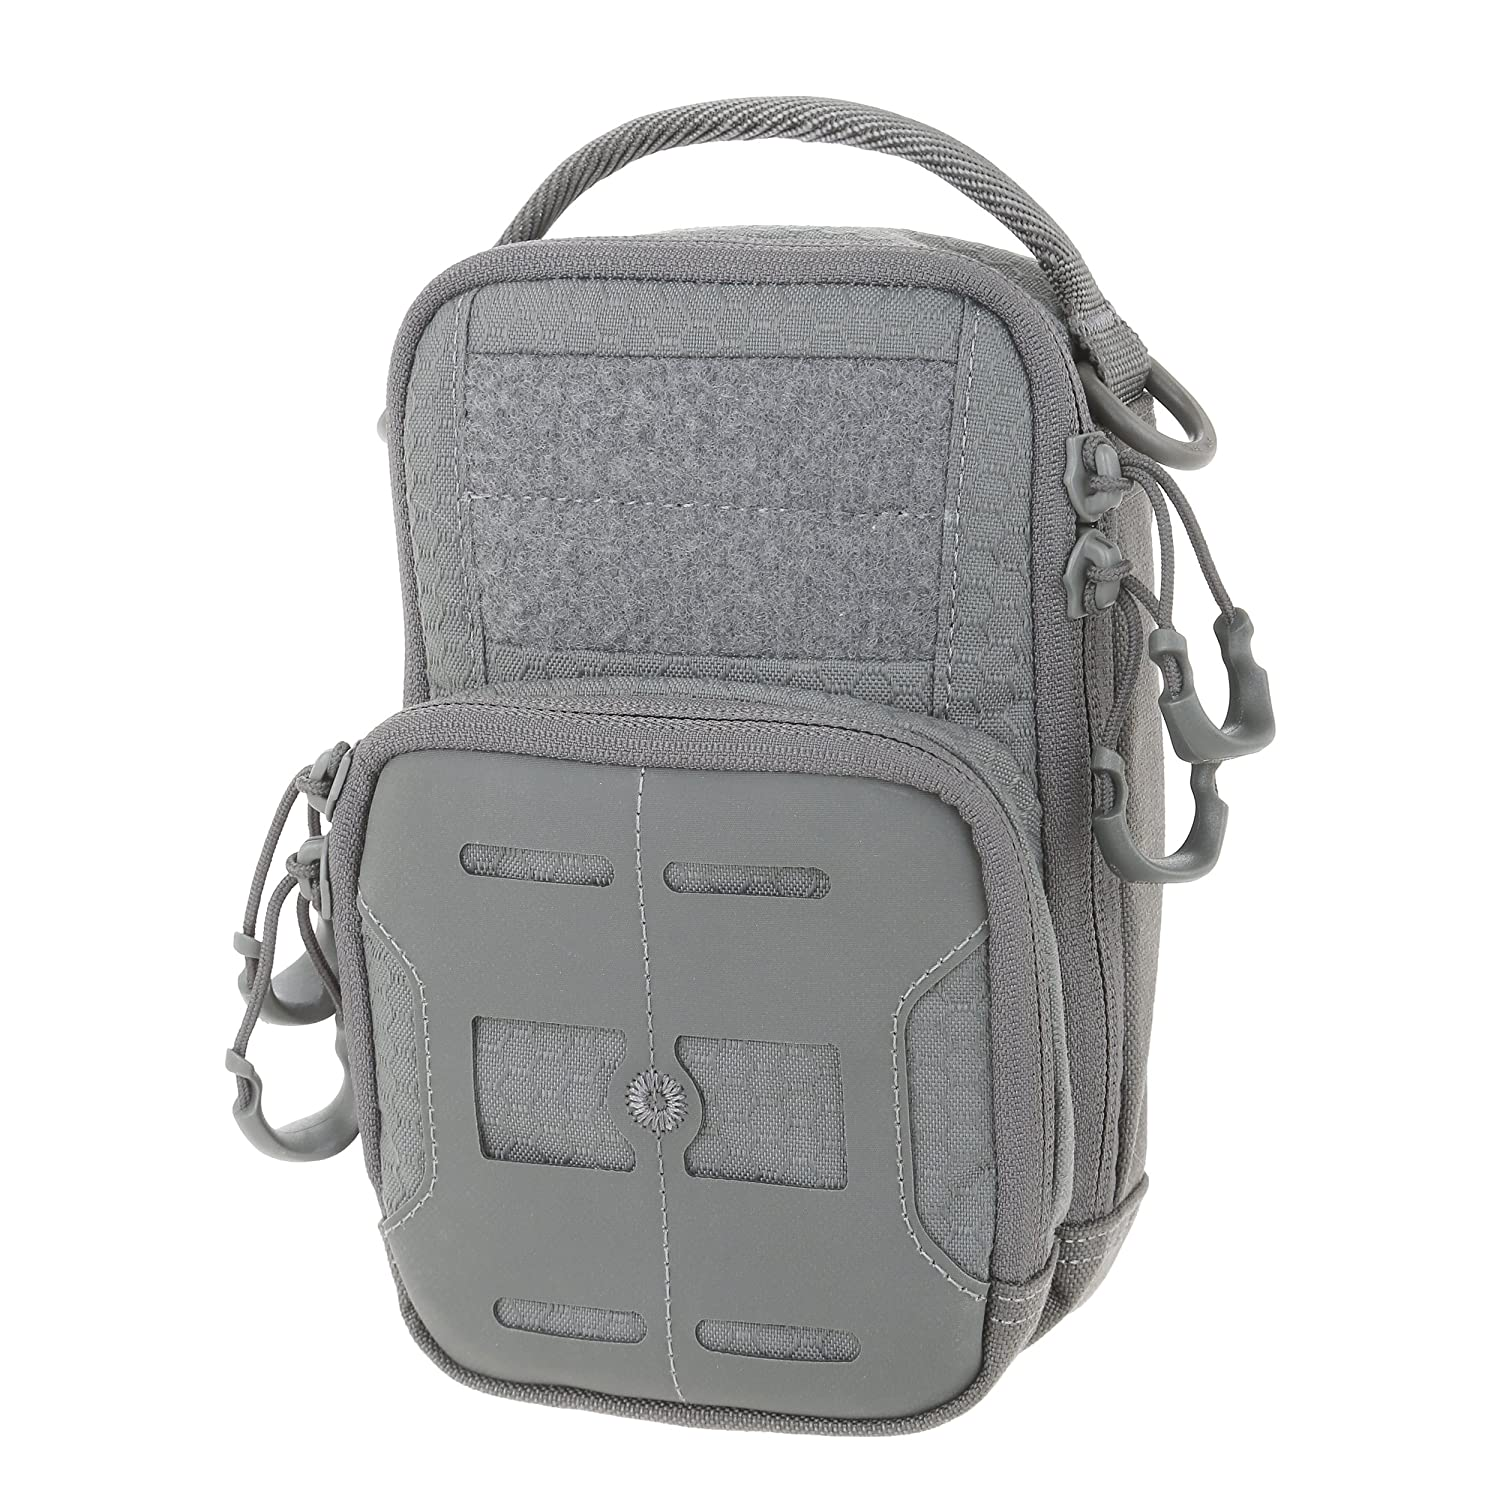 Maxpedition Porte-Monnaie, Gris (Gris) - MAXP-DEPGRY MXDEPGRY-BRK